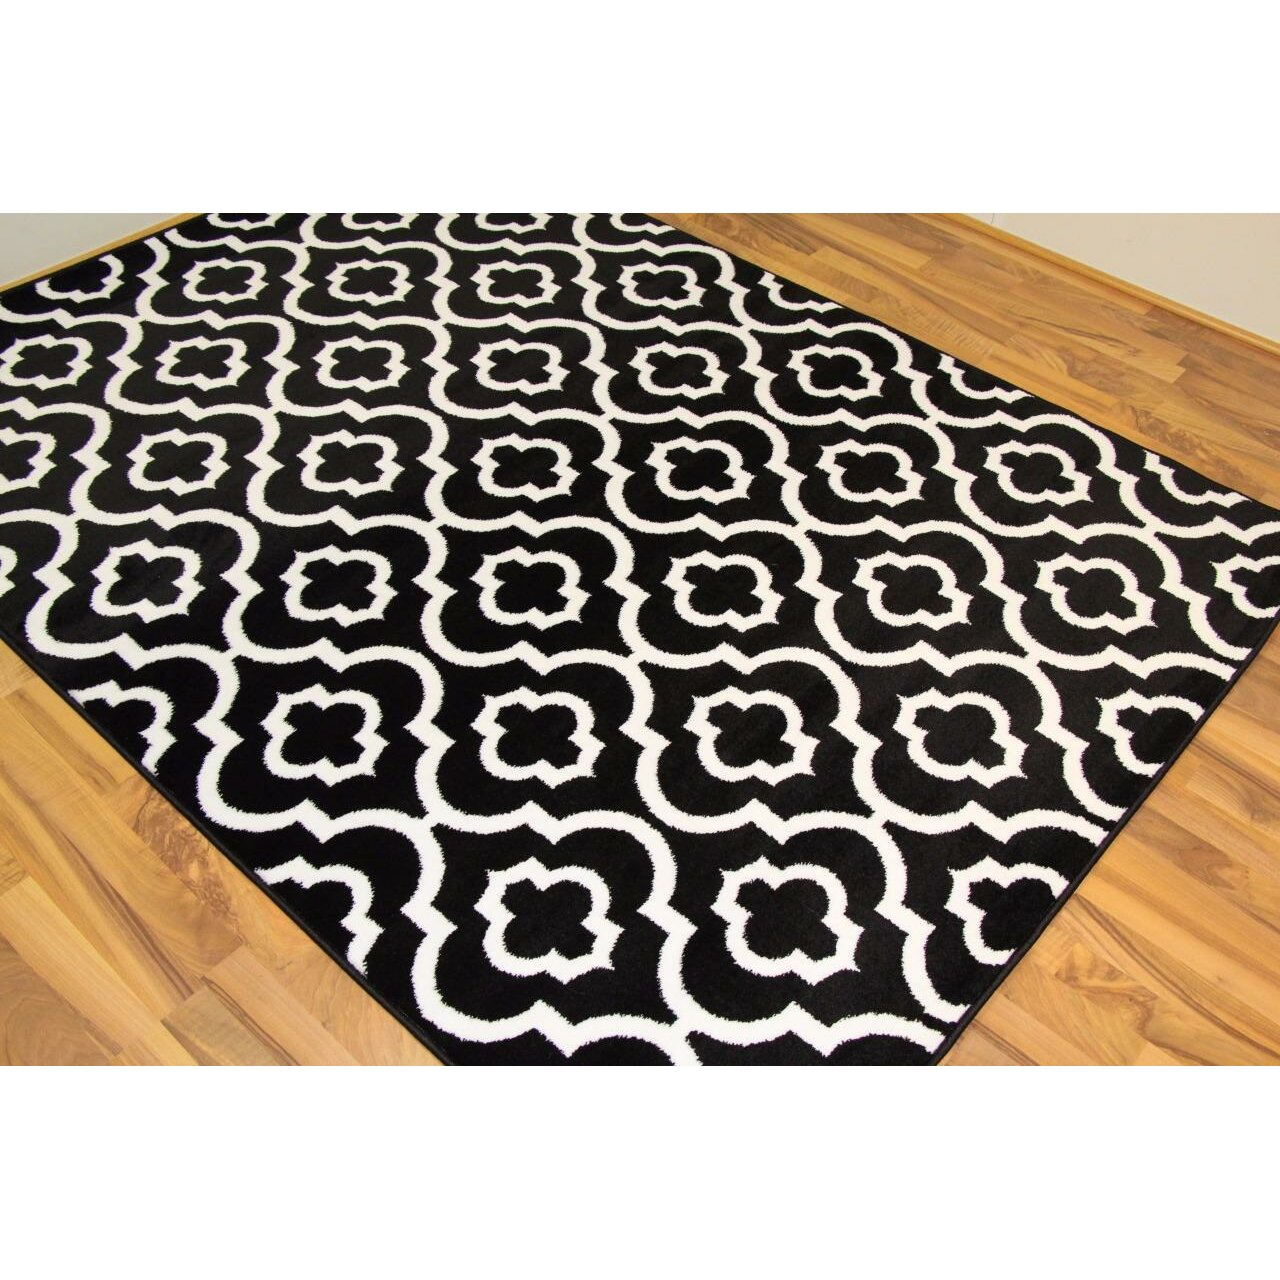 Indoor Outdoor Rugs Black And White: Varick Gallery Catalan Black/White Indoor/Outdoor Area Rug